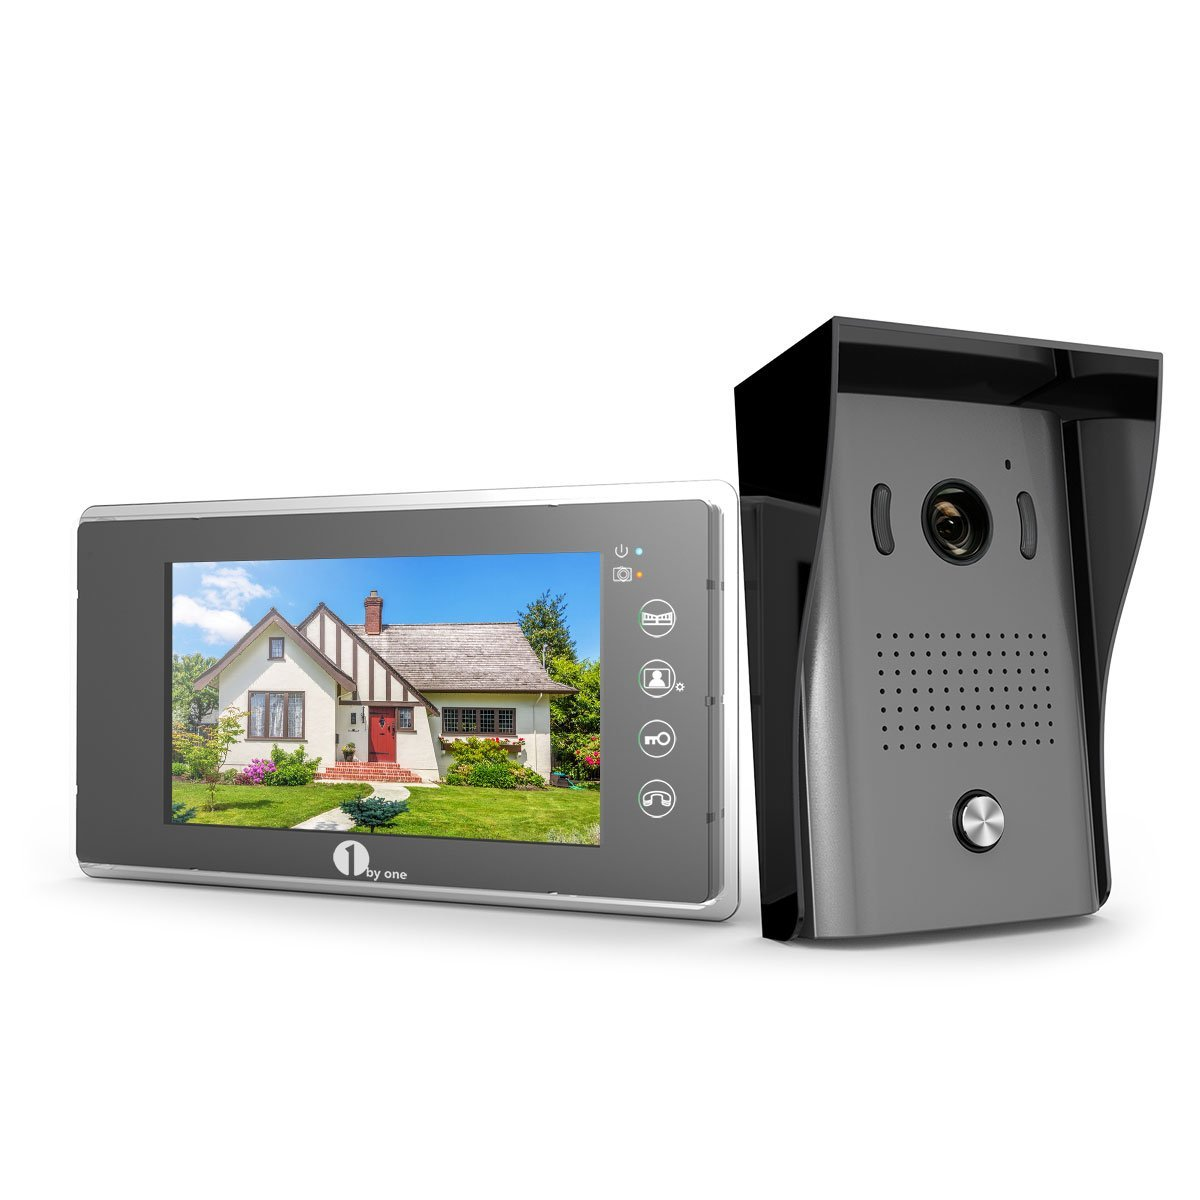 1byone Video Doorphone